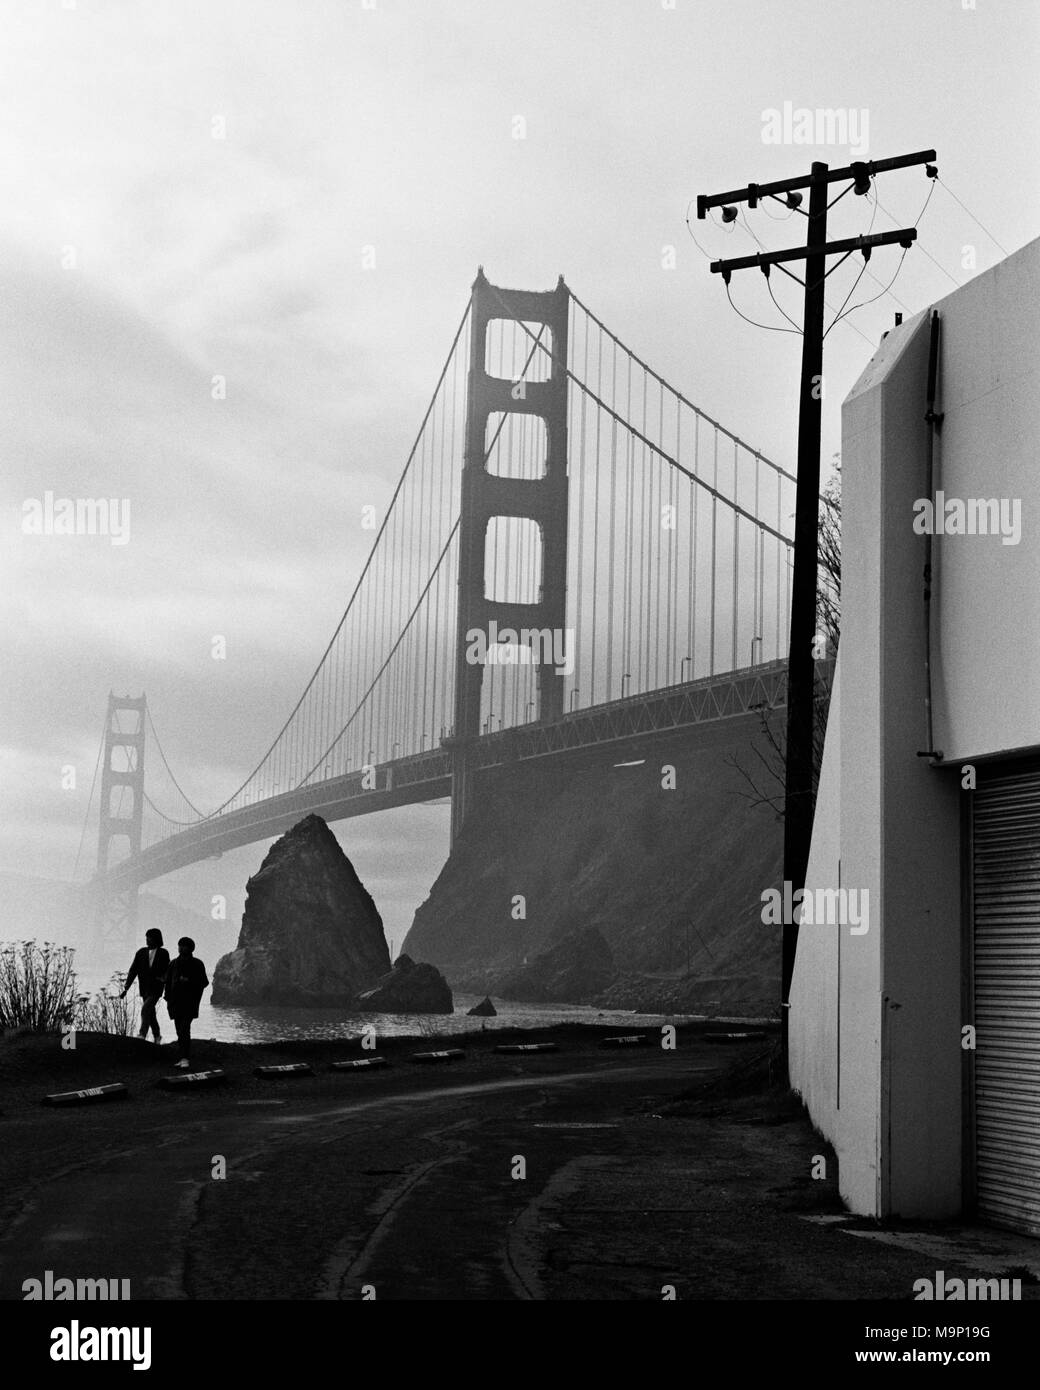 A silhouetted couple walking along the water with the Golden Gate Bridge in the background. Golden Gate National Recreation Area, Marin County, California. - Stock Image